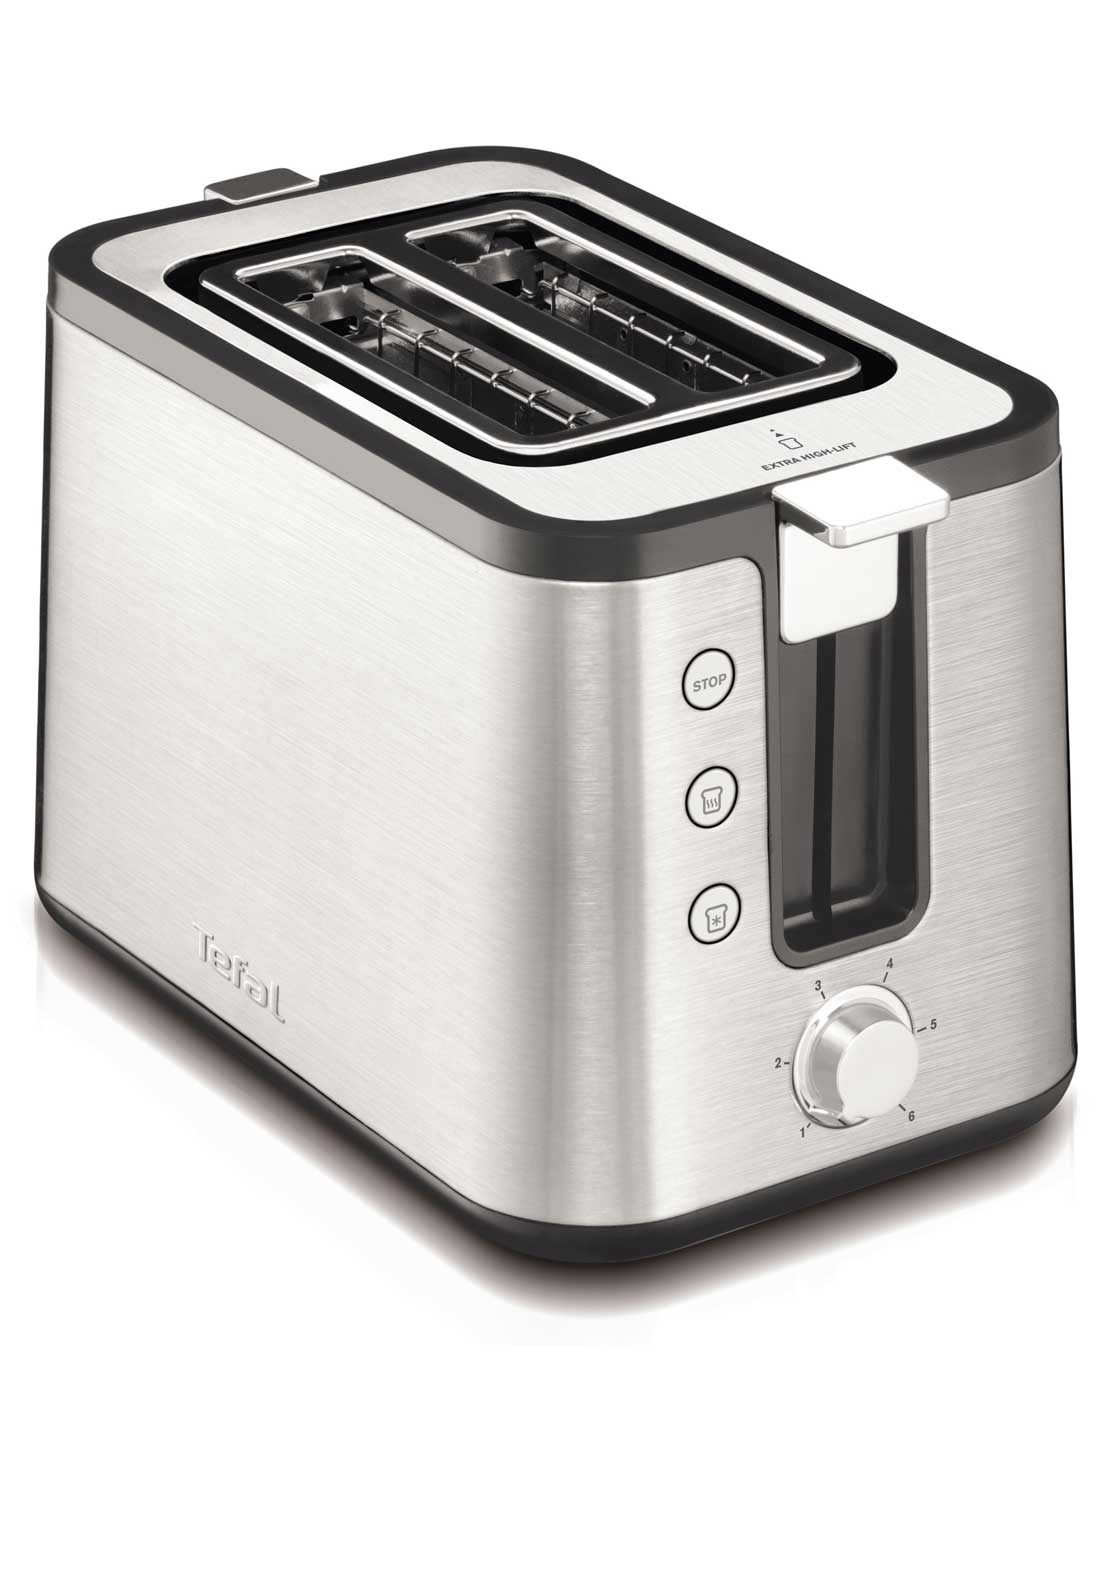 Tefal Prelude 2 Slot Toaster, Stainless Steel & Black